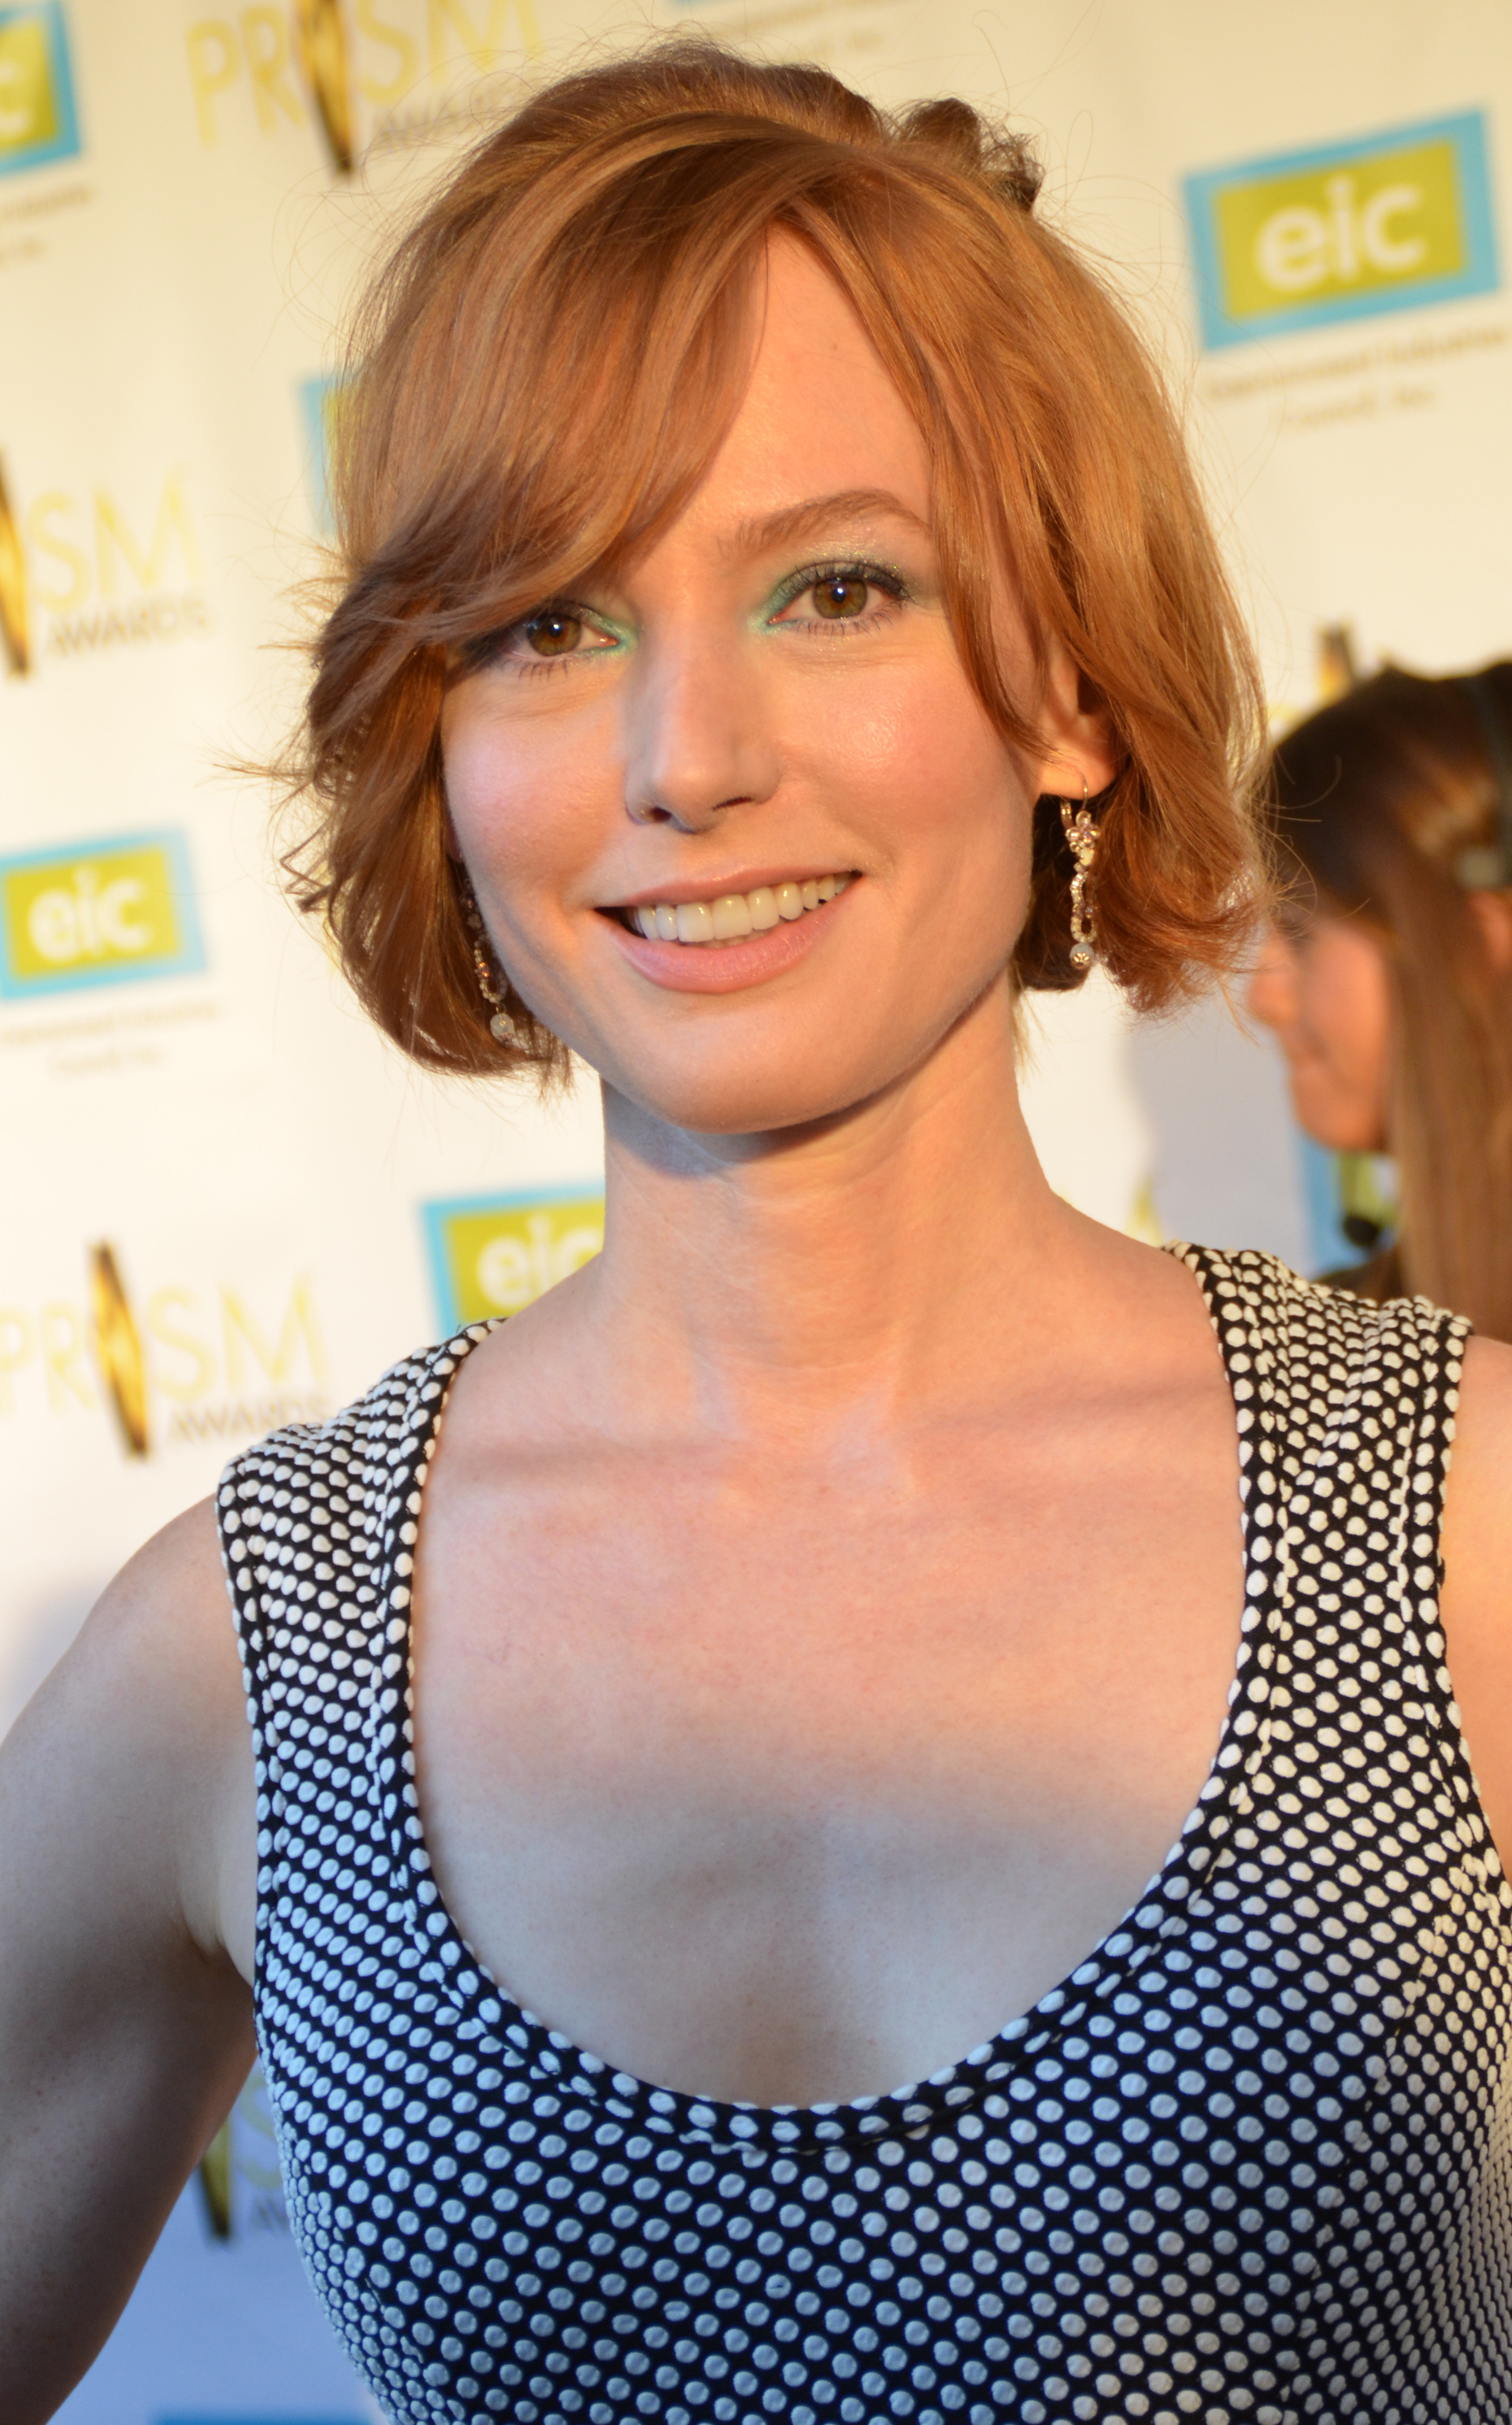 alicia witt wallpapers high quality download free